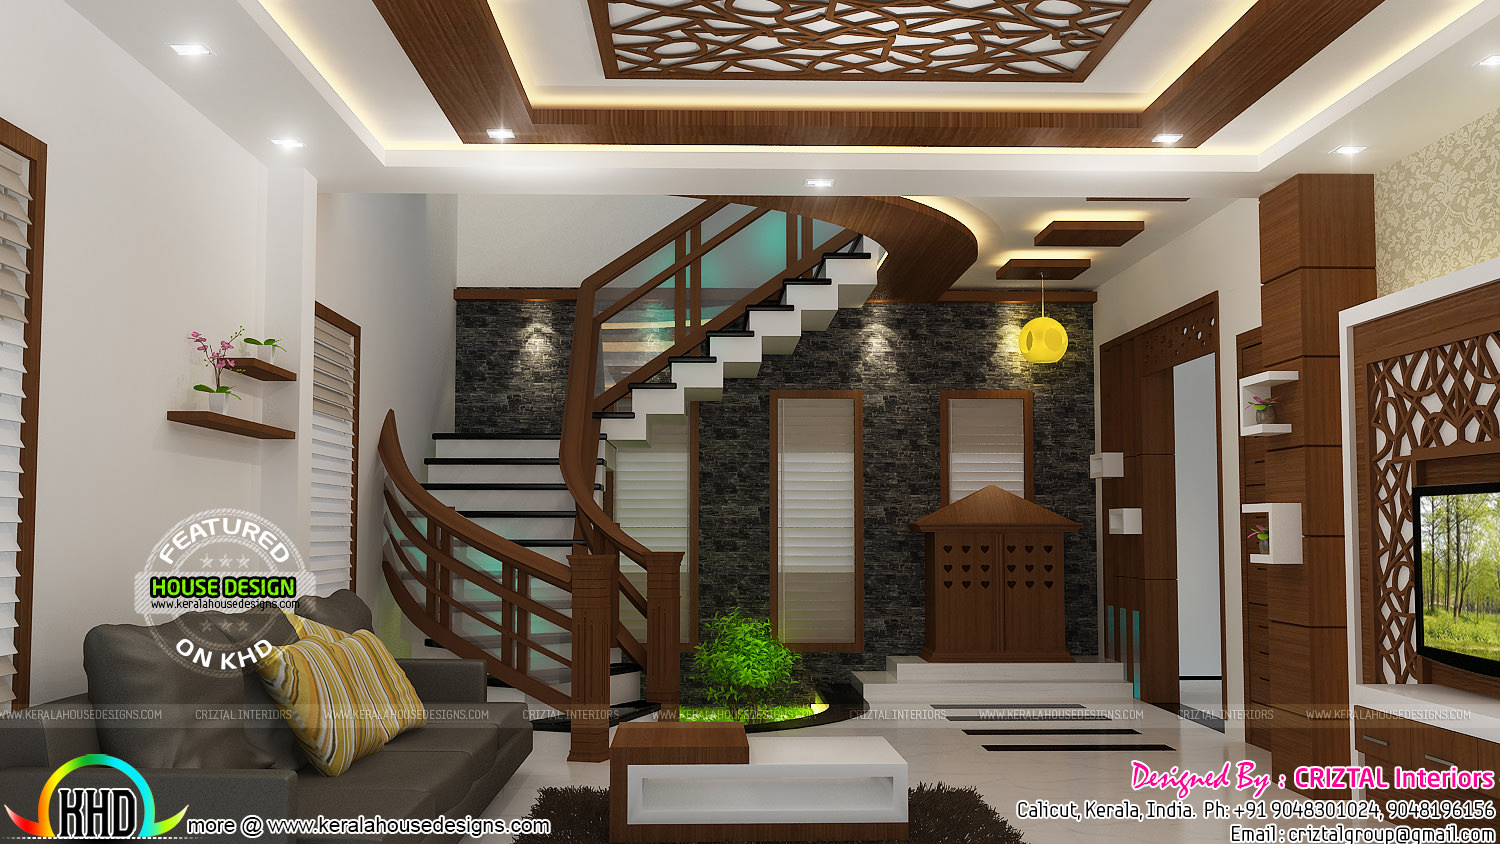 Bedroom dining hall and living interior kerala home for Interior designs for hall